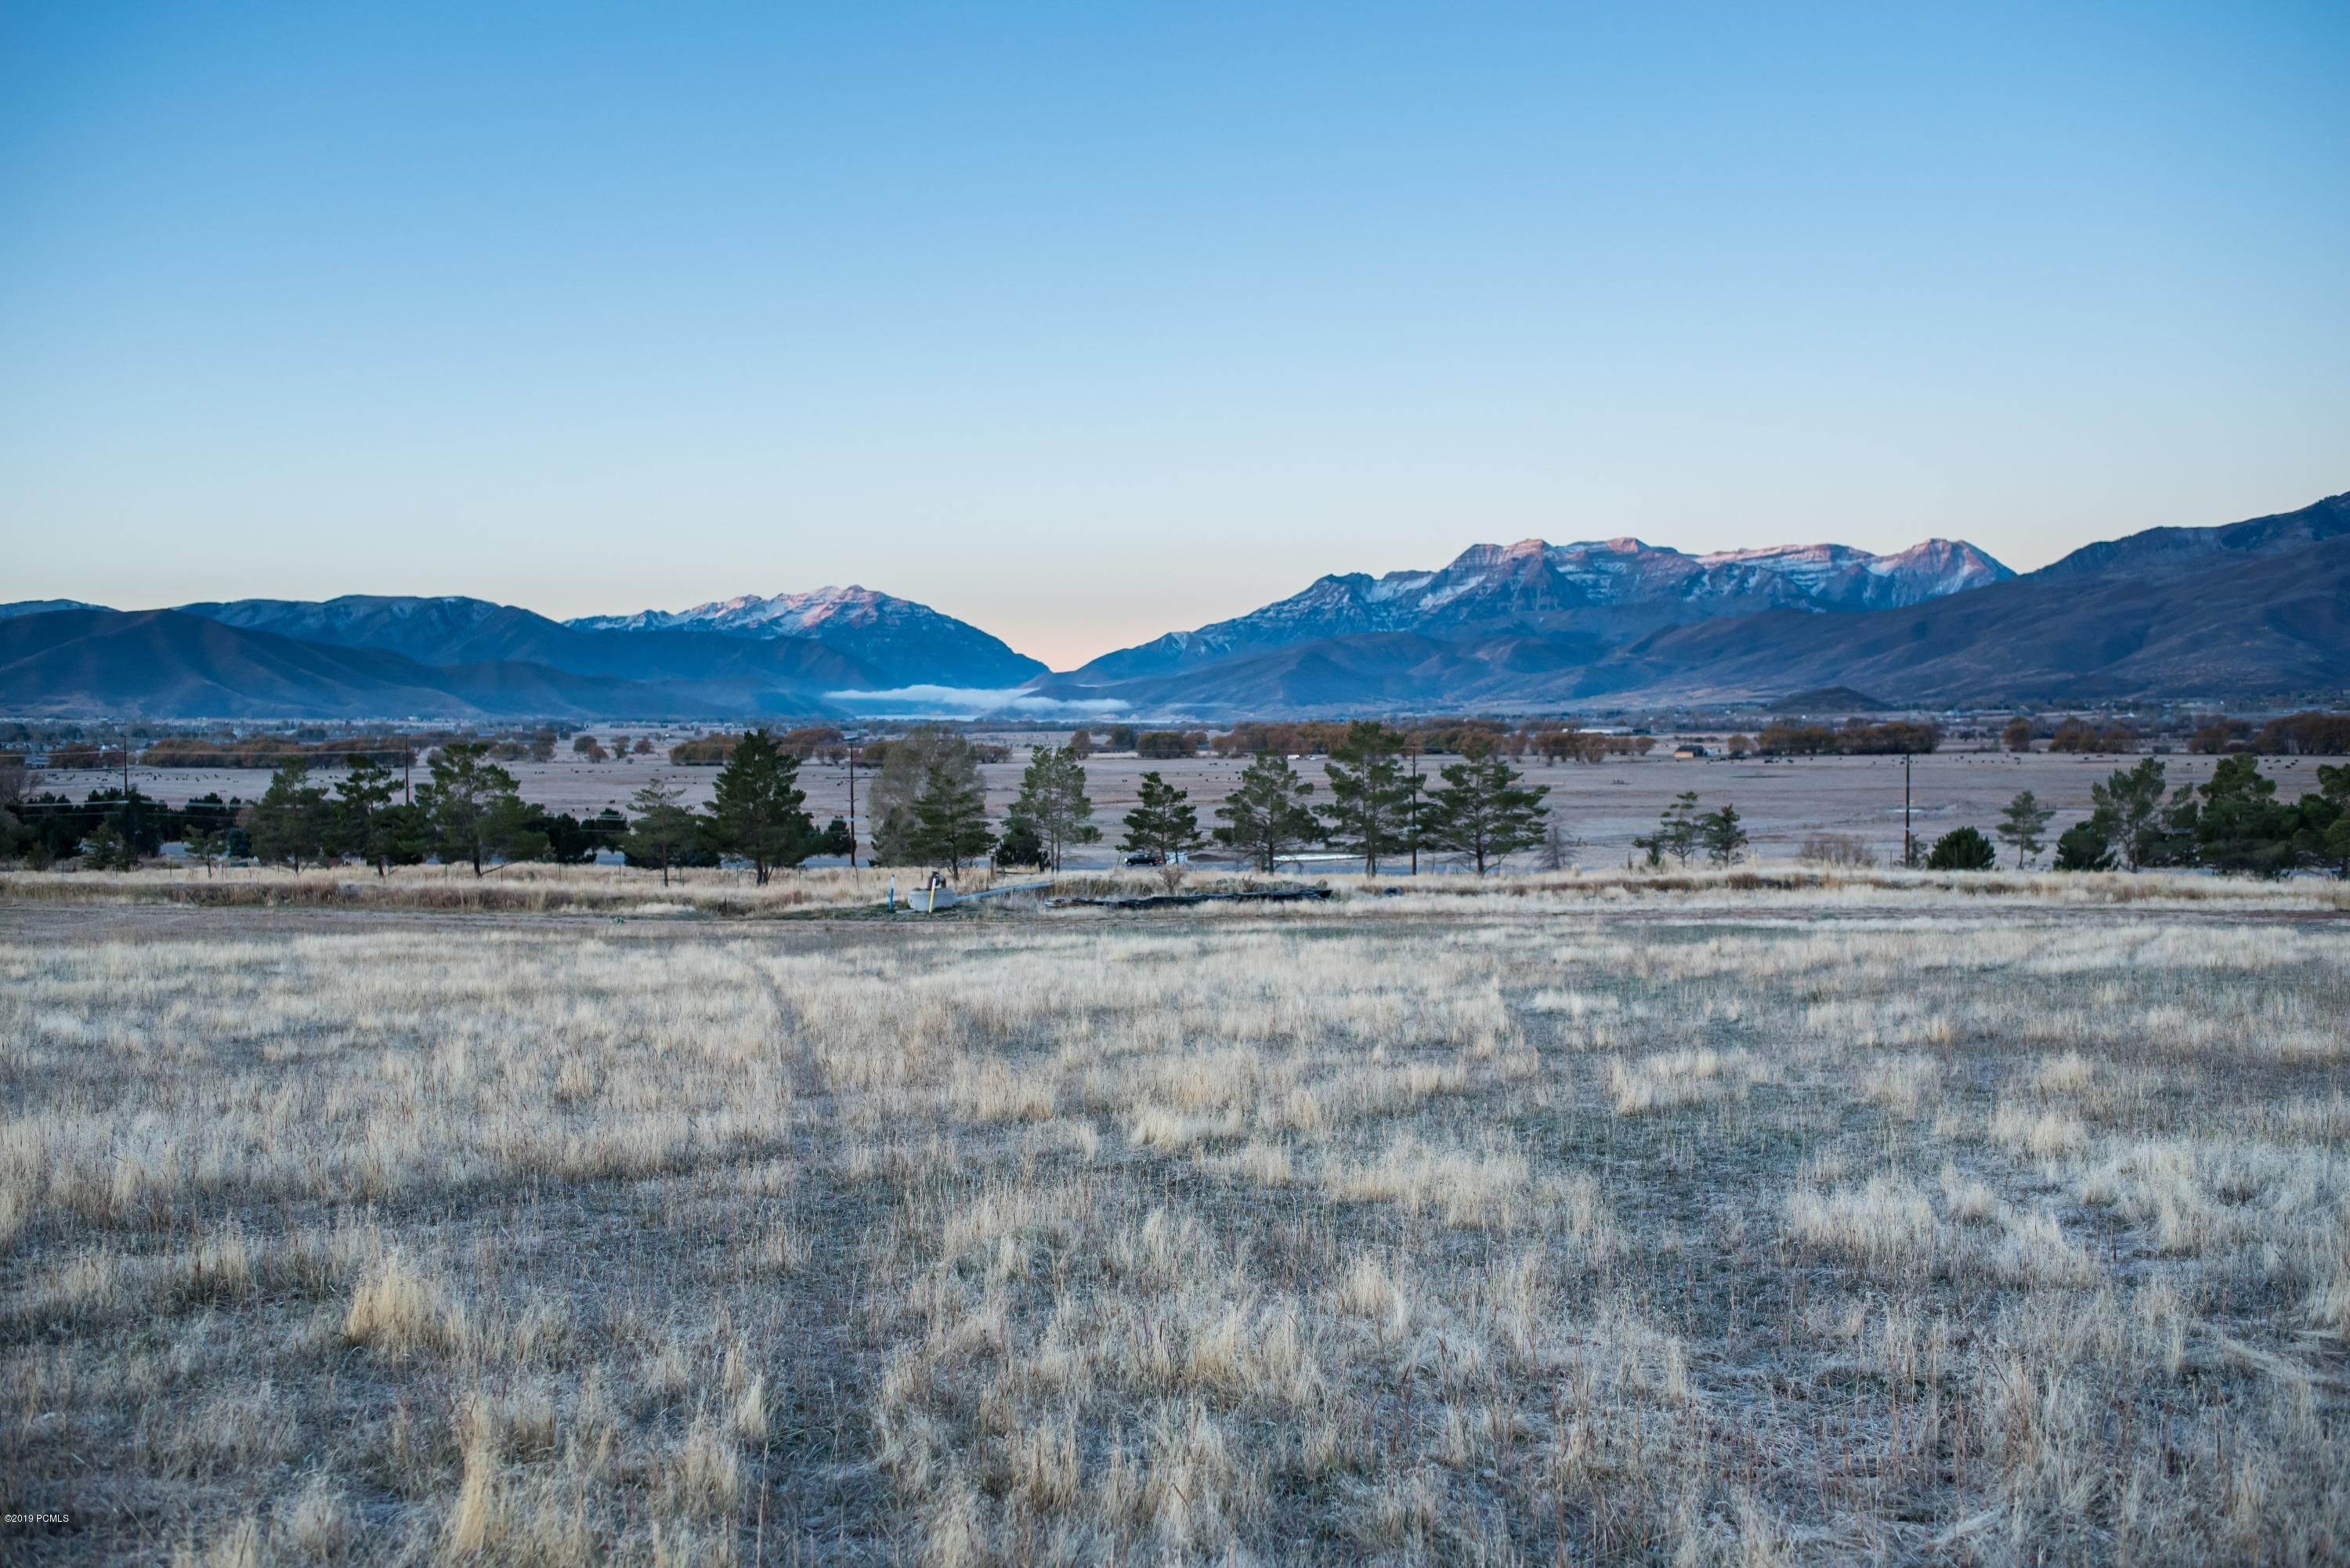 1003 Tatton Park Drive, Heber City, Utah 84032, ,Land,For Sale,Tatton Park,20190109112430415765000000